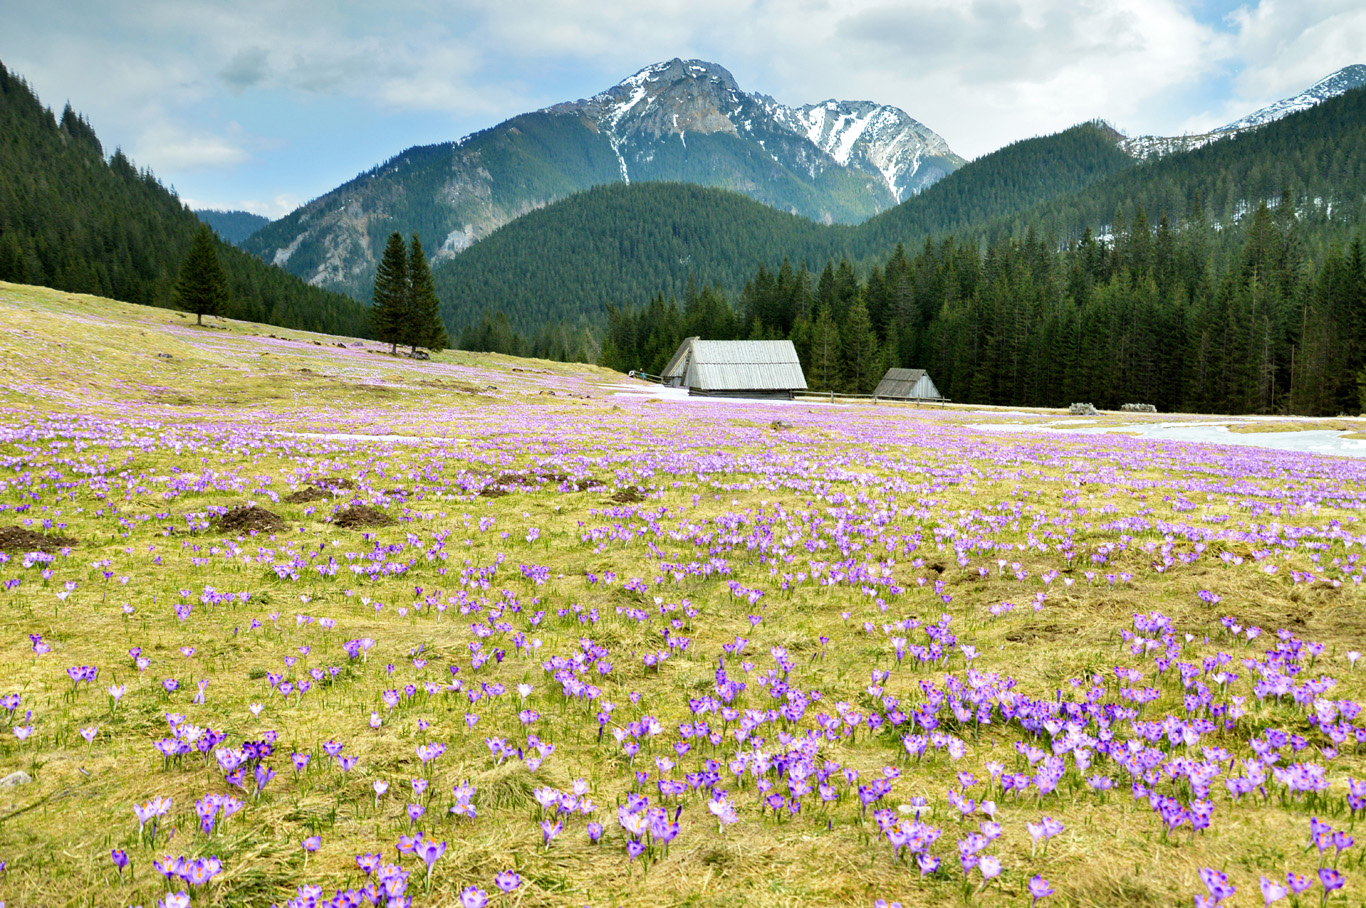 Chocholowska Valley covered in flowers